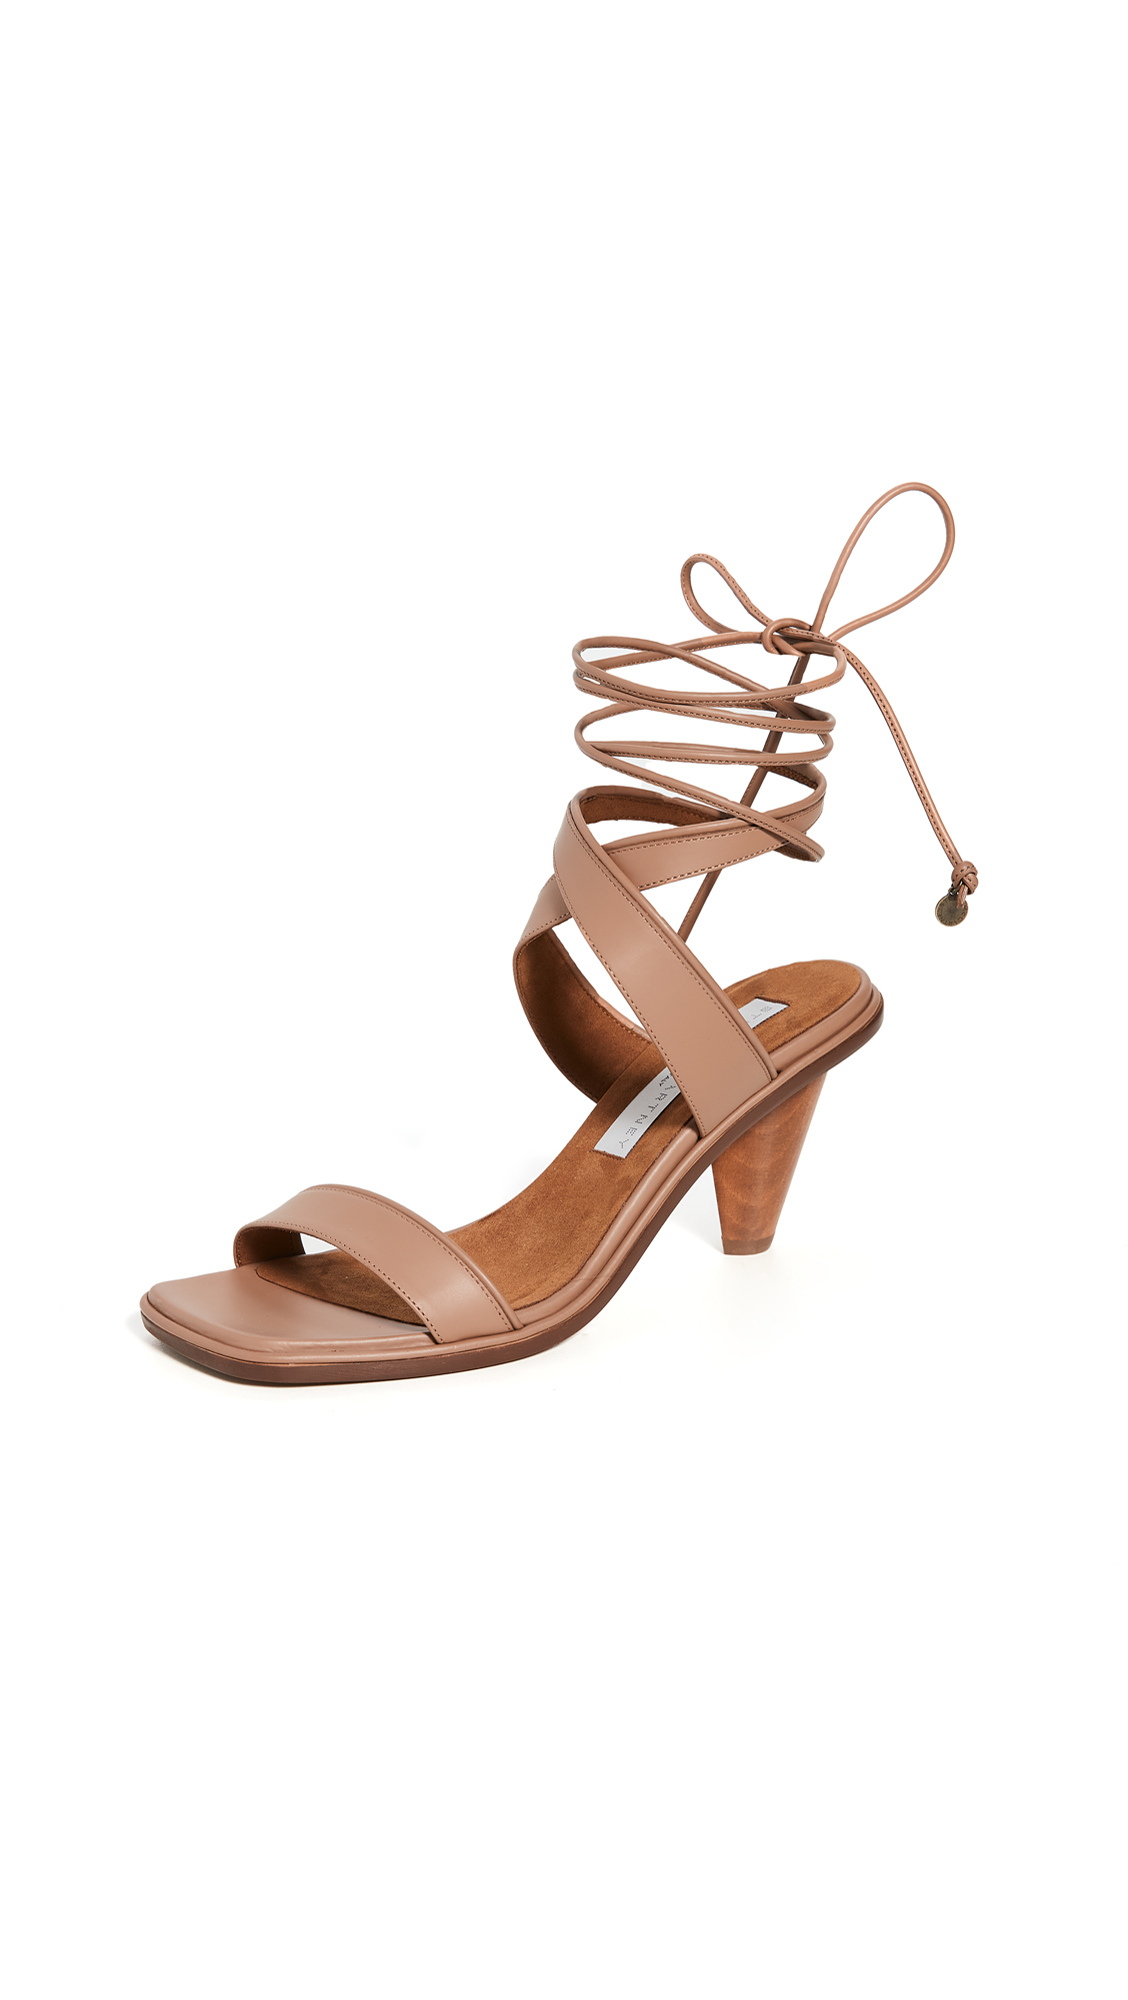 Stella McCartney Rhea Sandals – 40% Off Sale